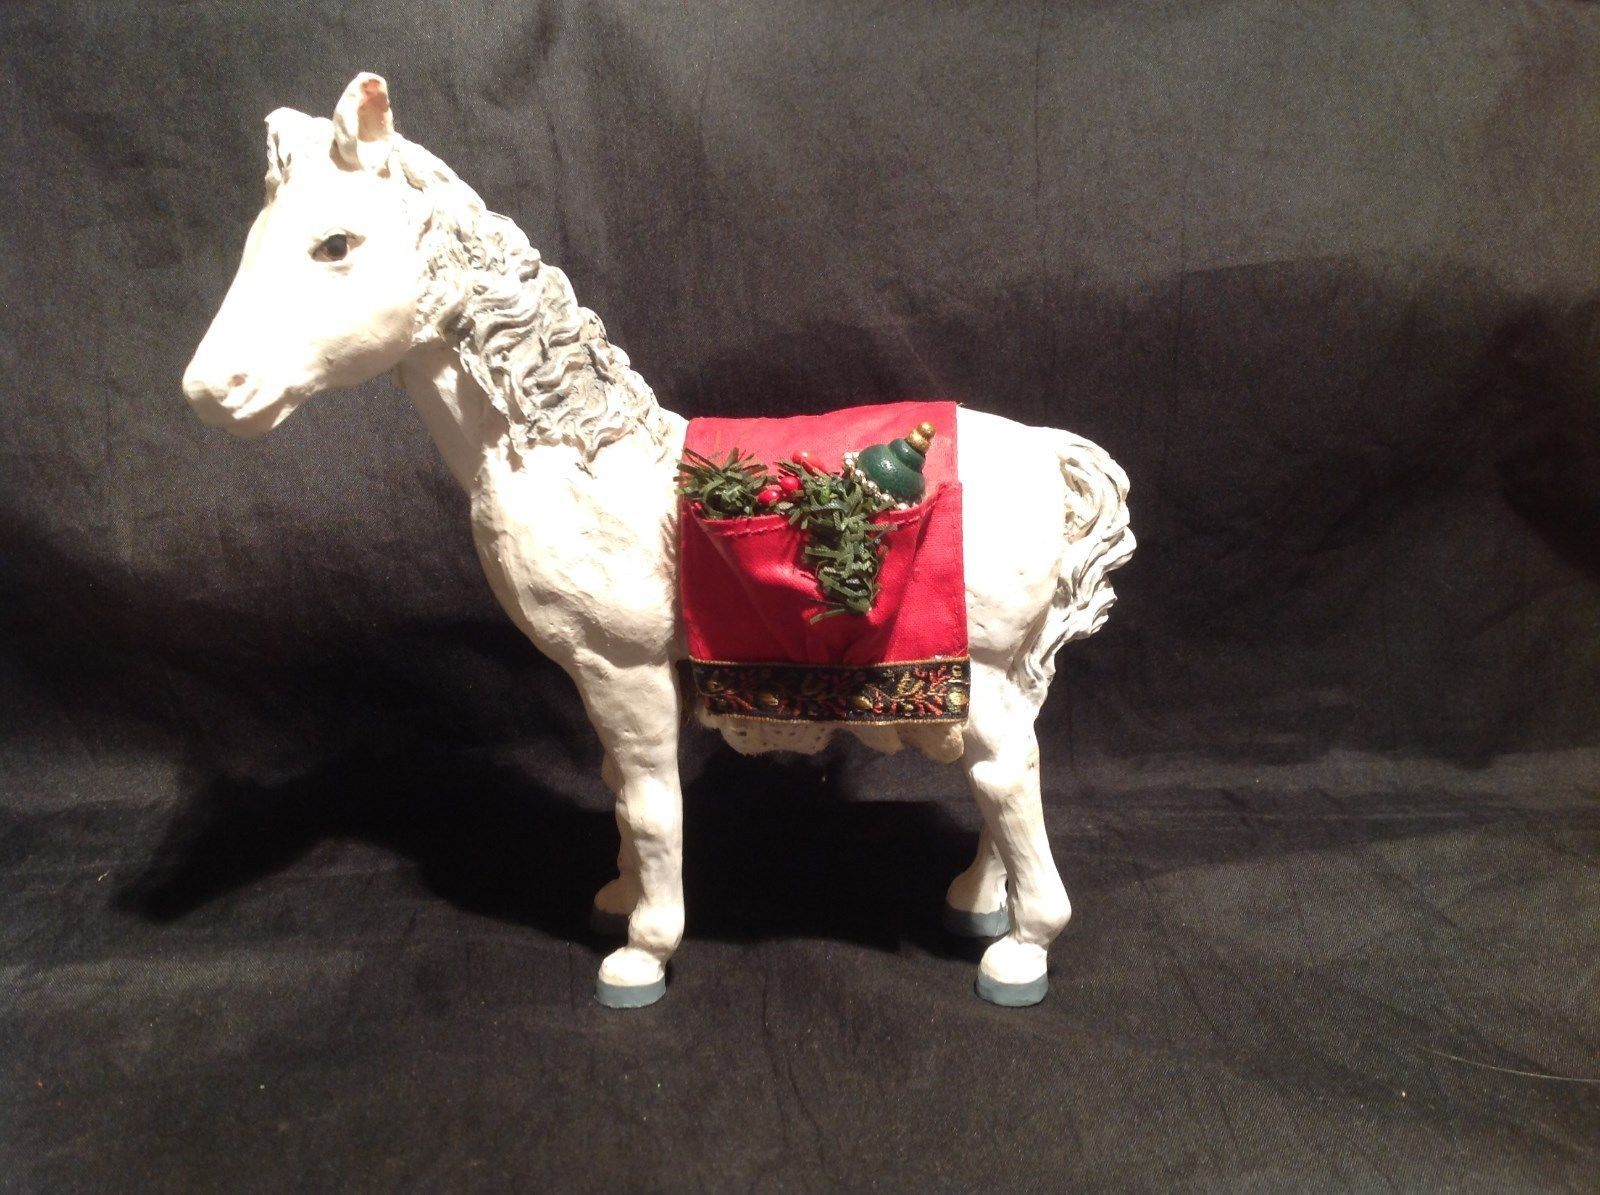 Decorative Horse Figurine White with Red Saddle Holding Christmas Items